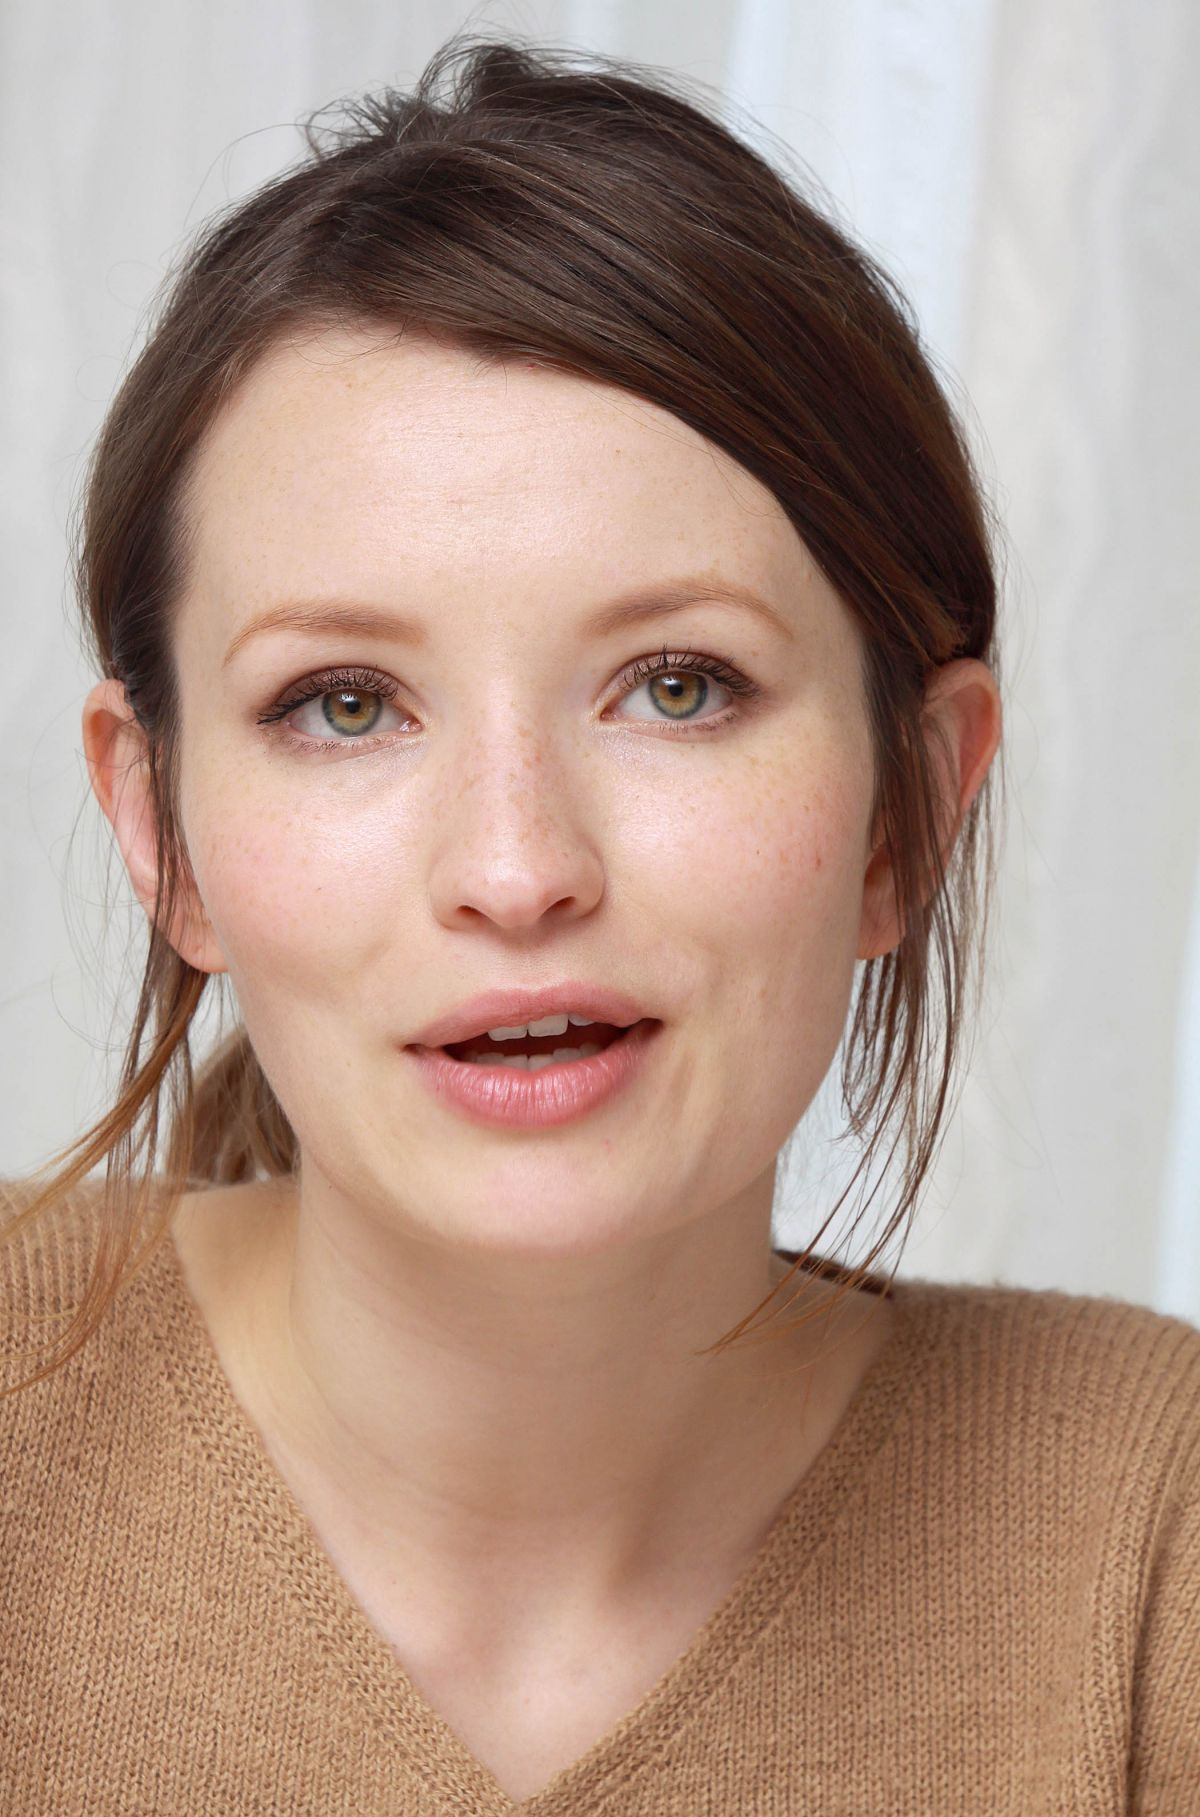 Emily Browning At 2014 Munawar Hosain Portrait Session ... Naomi Watts